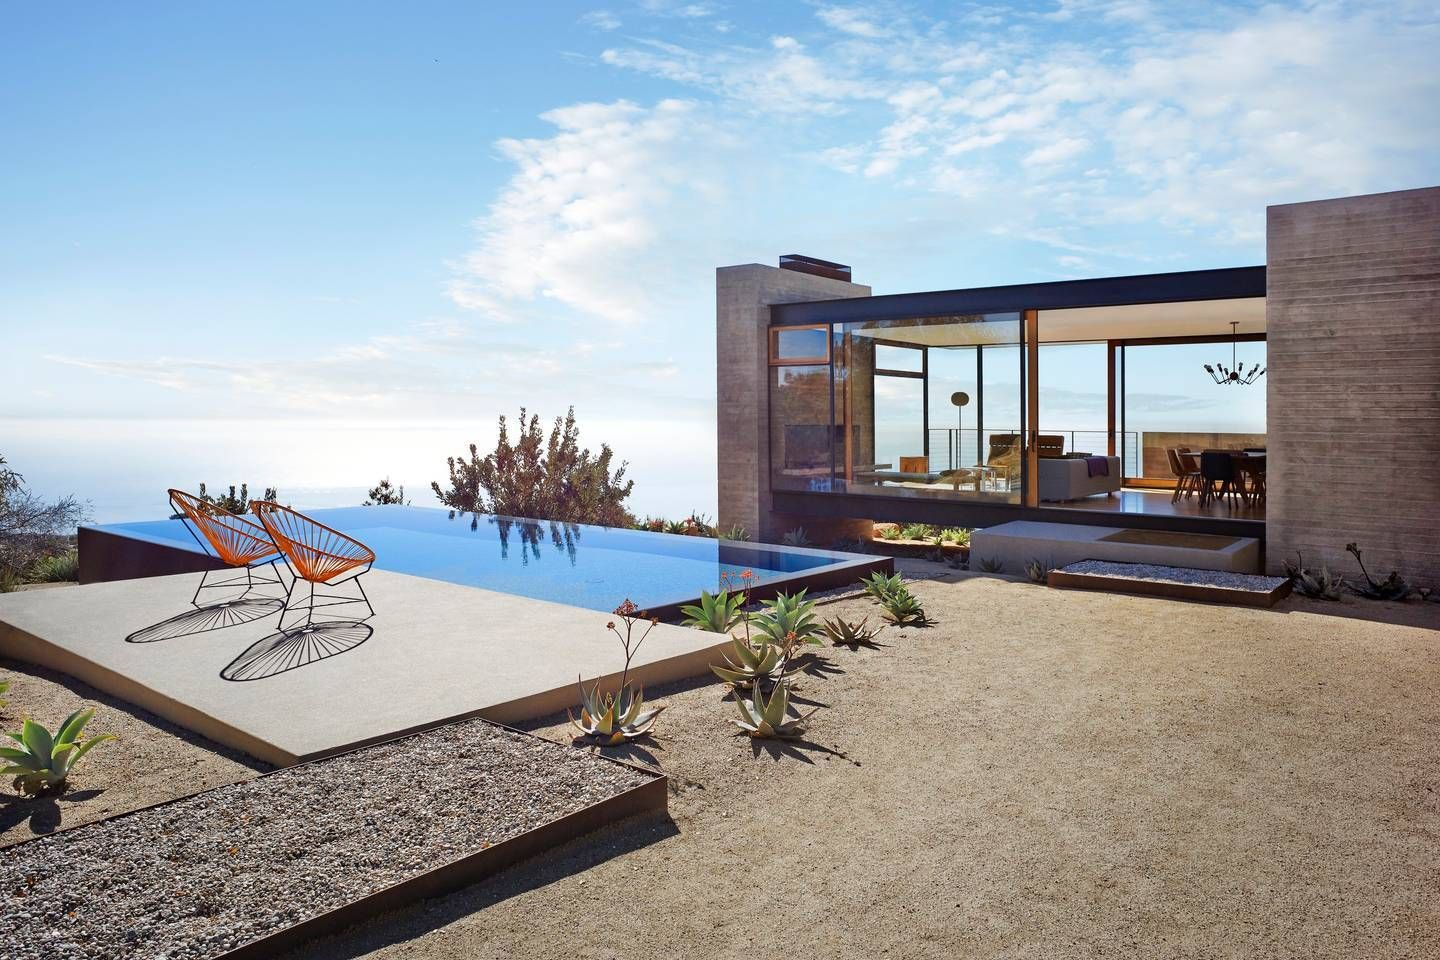 7 Airbnb Malibu Rentals For A Coastal Escape Oceanfront Cottage Mansions Retreat House